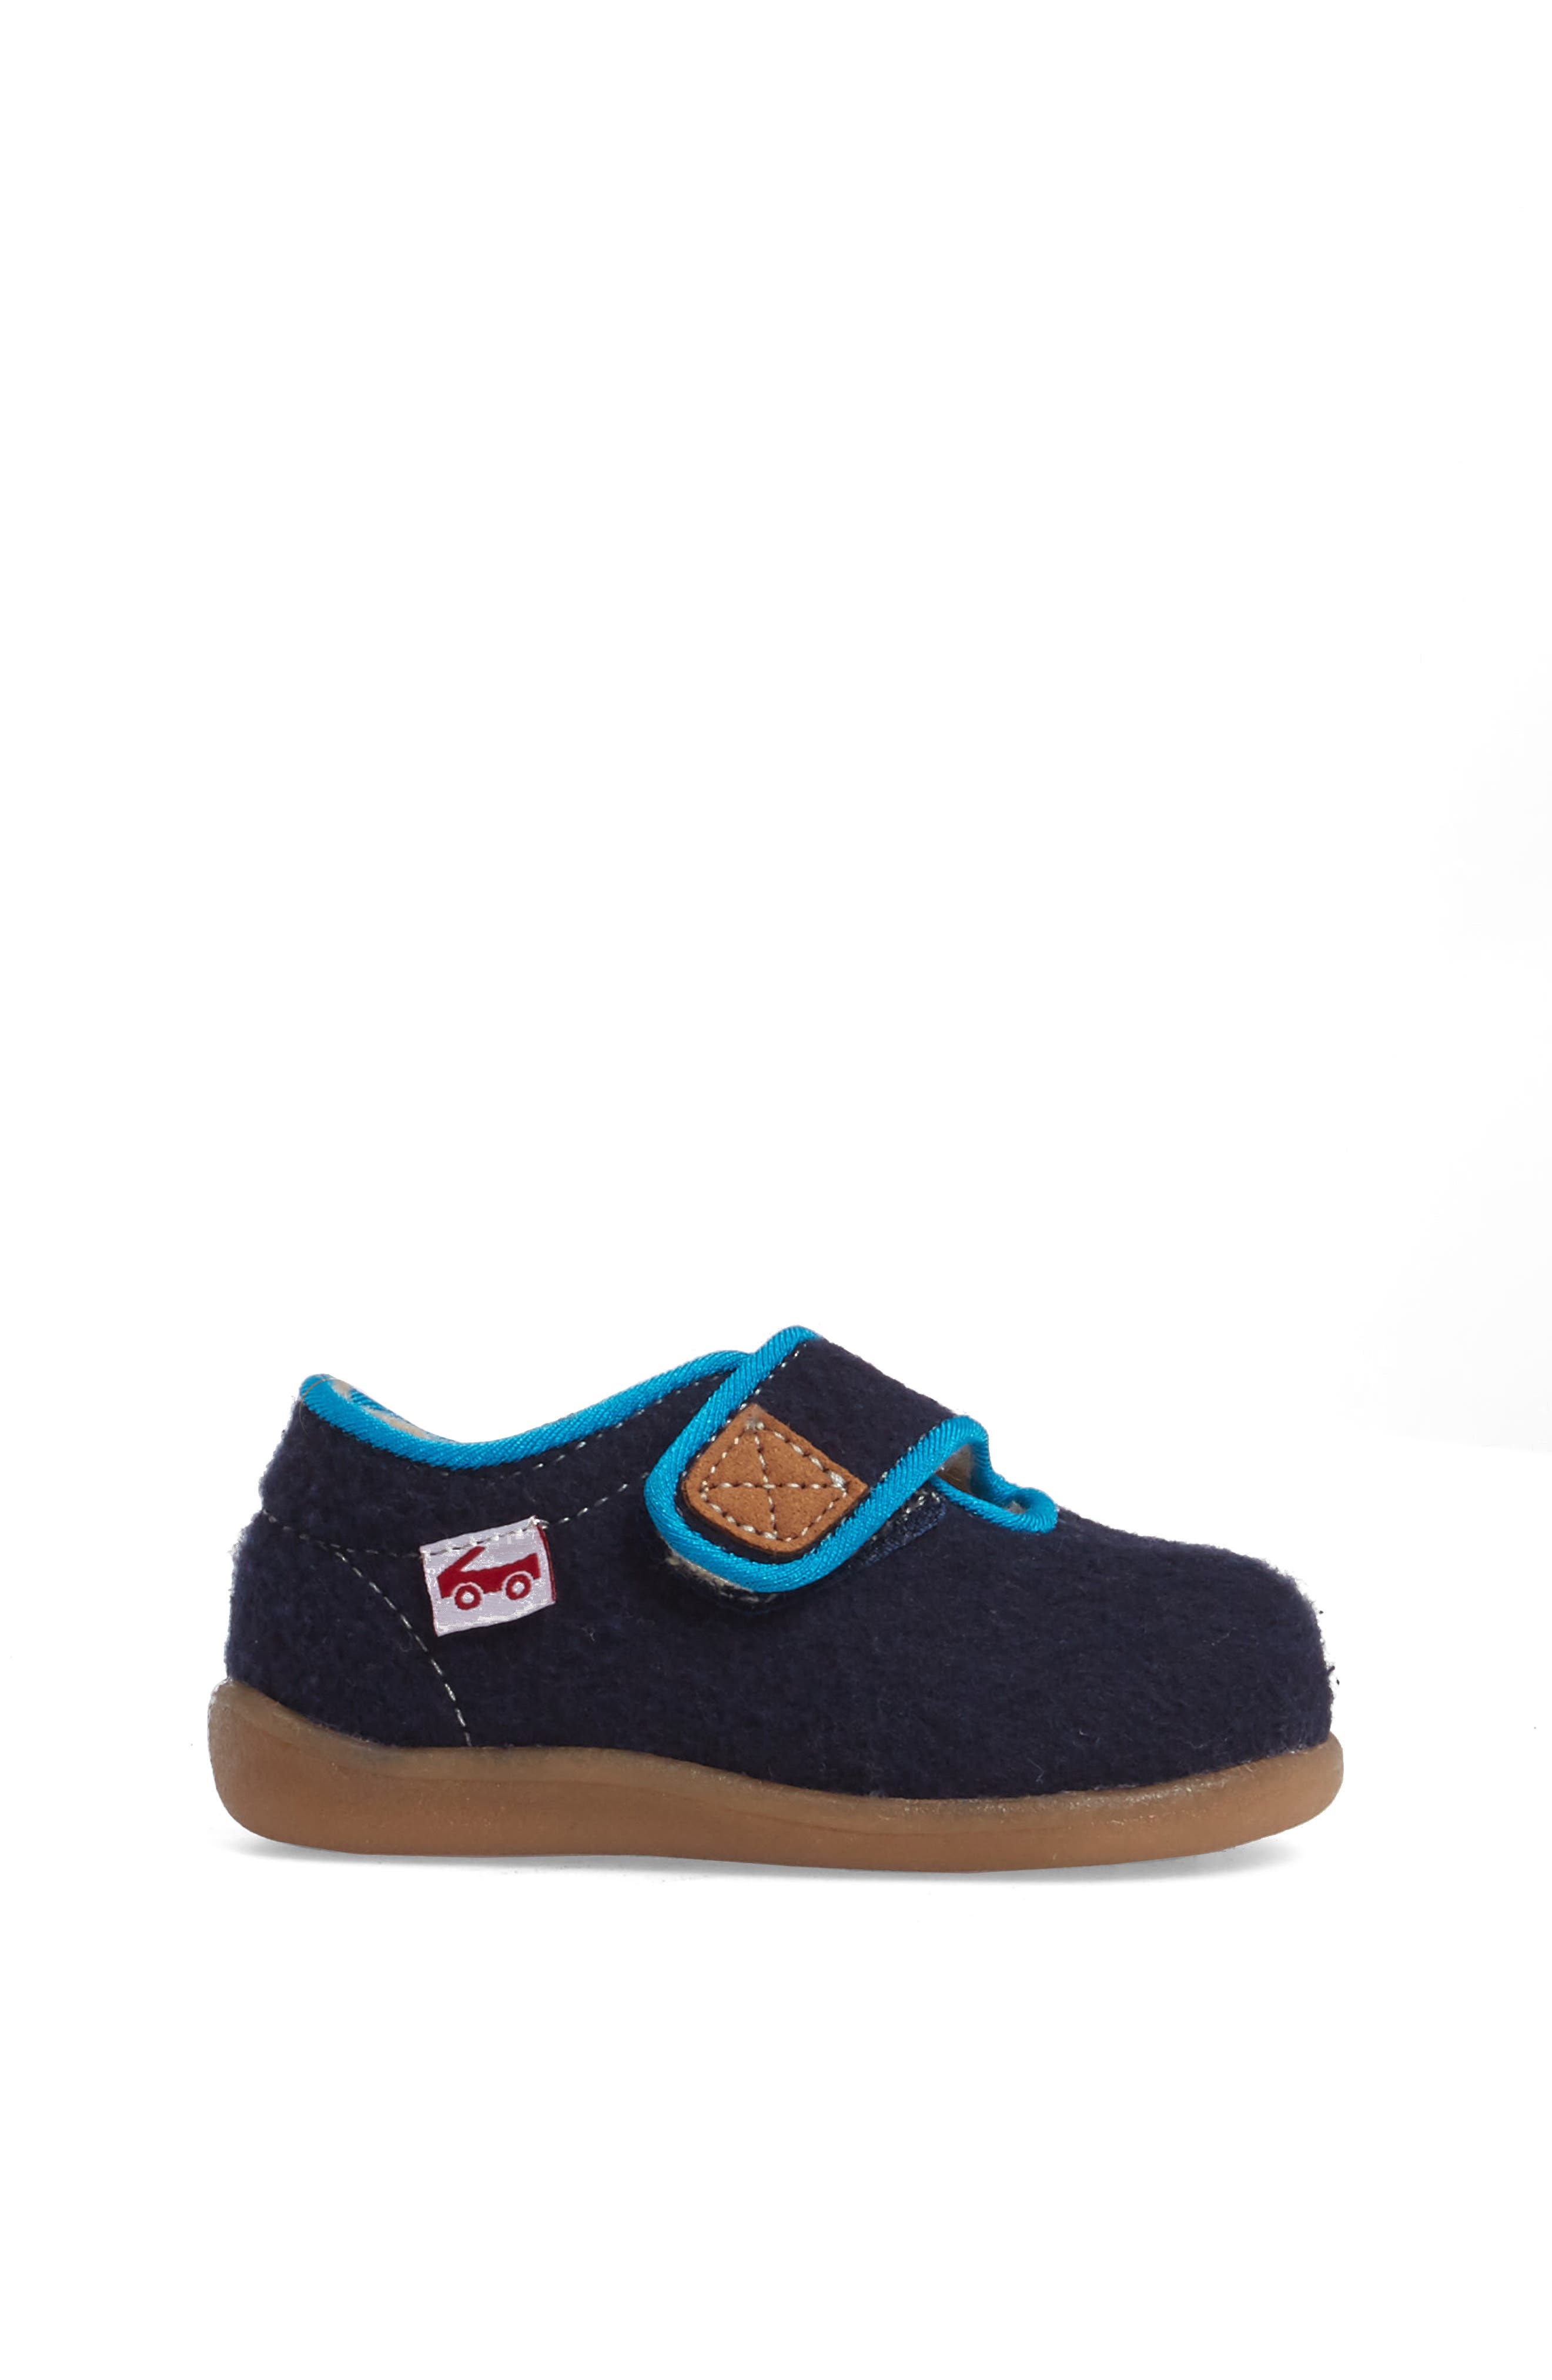 Cruz Slipper,                             Alternate thumbnail 3, color,                             Navy